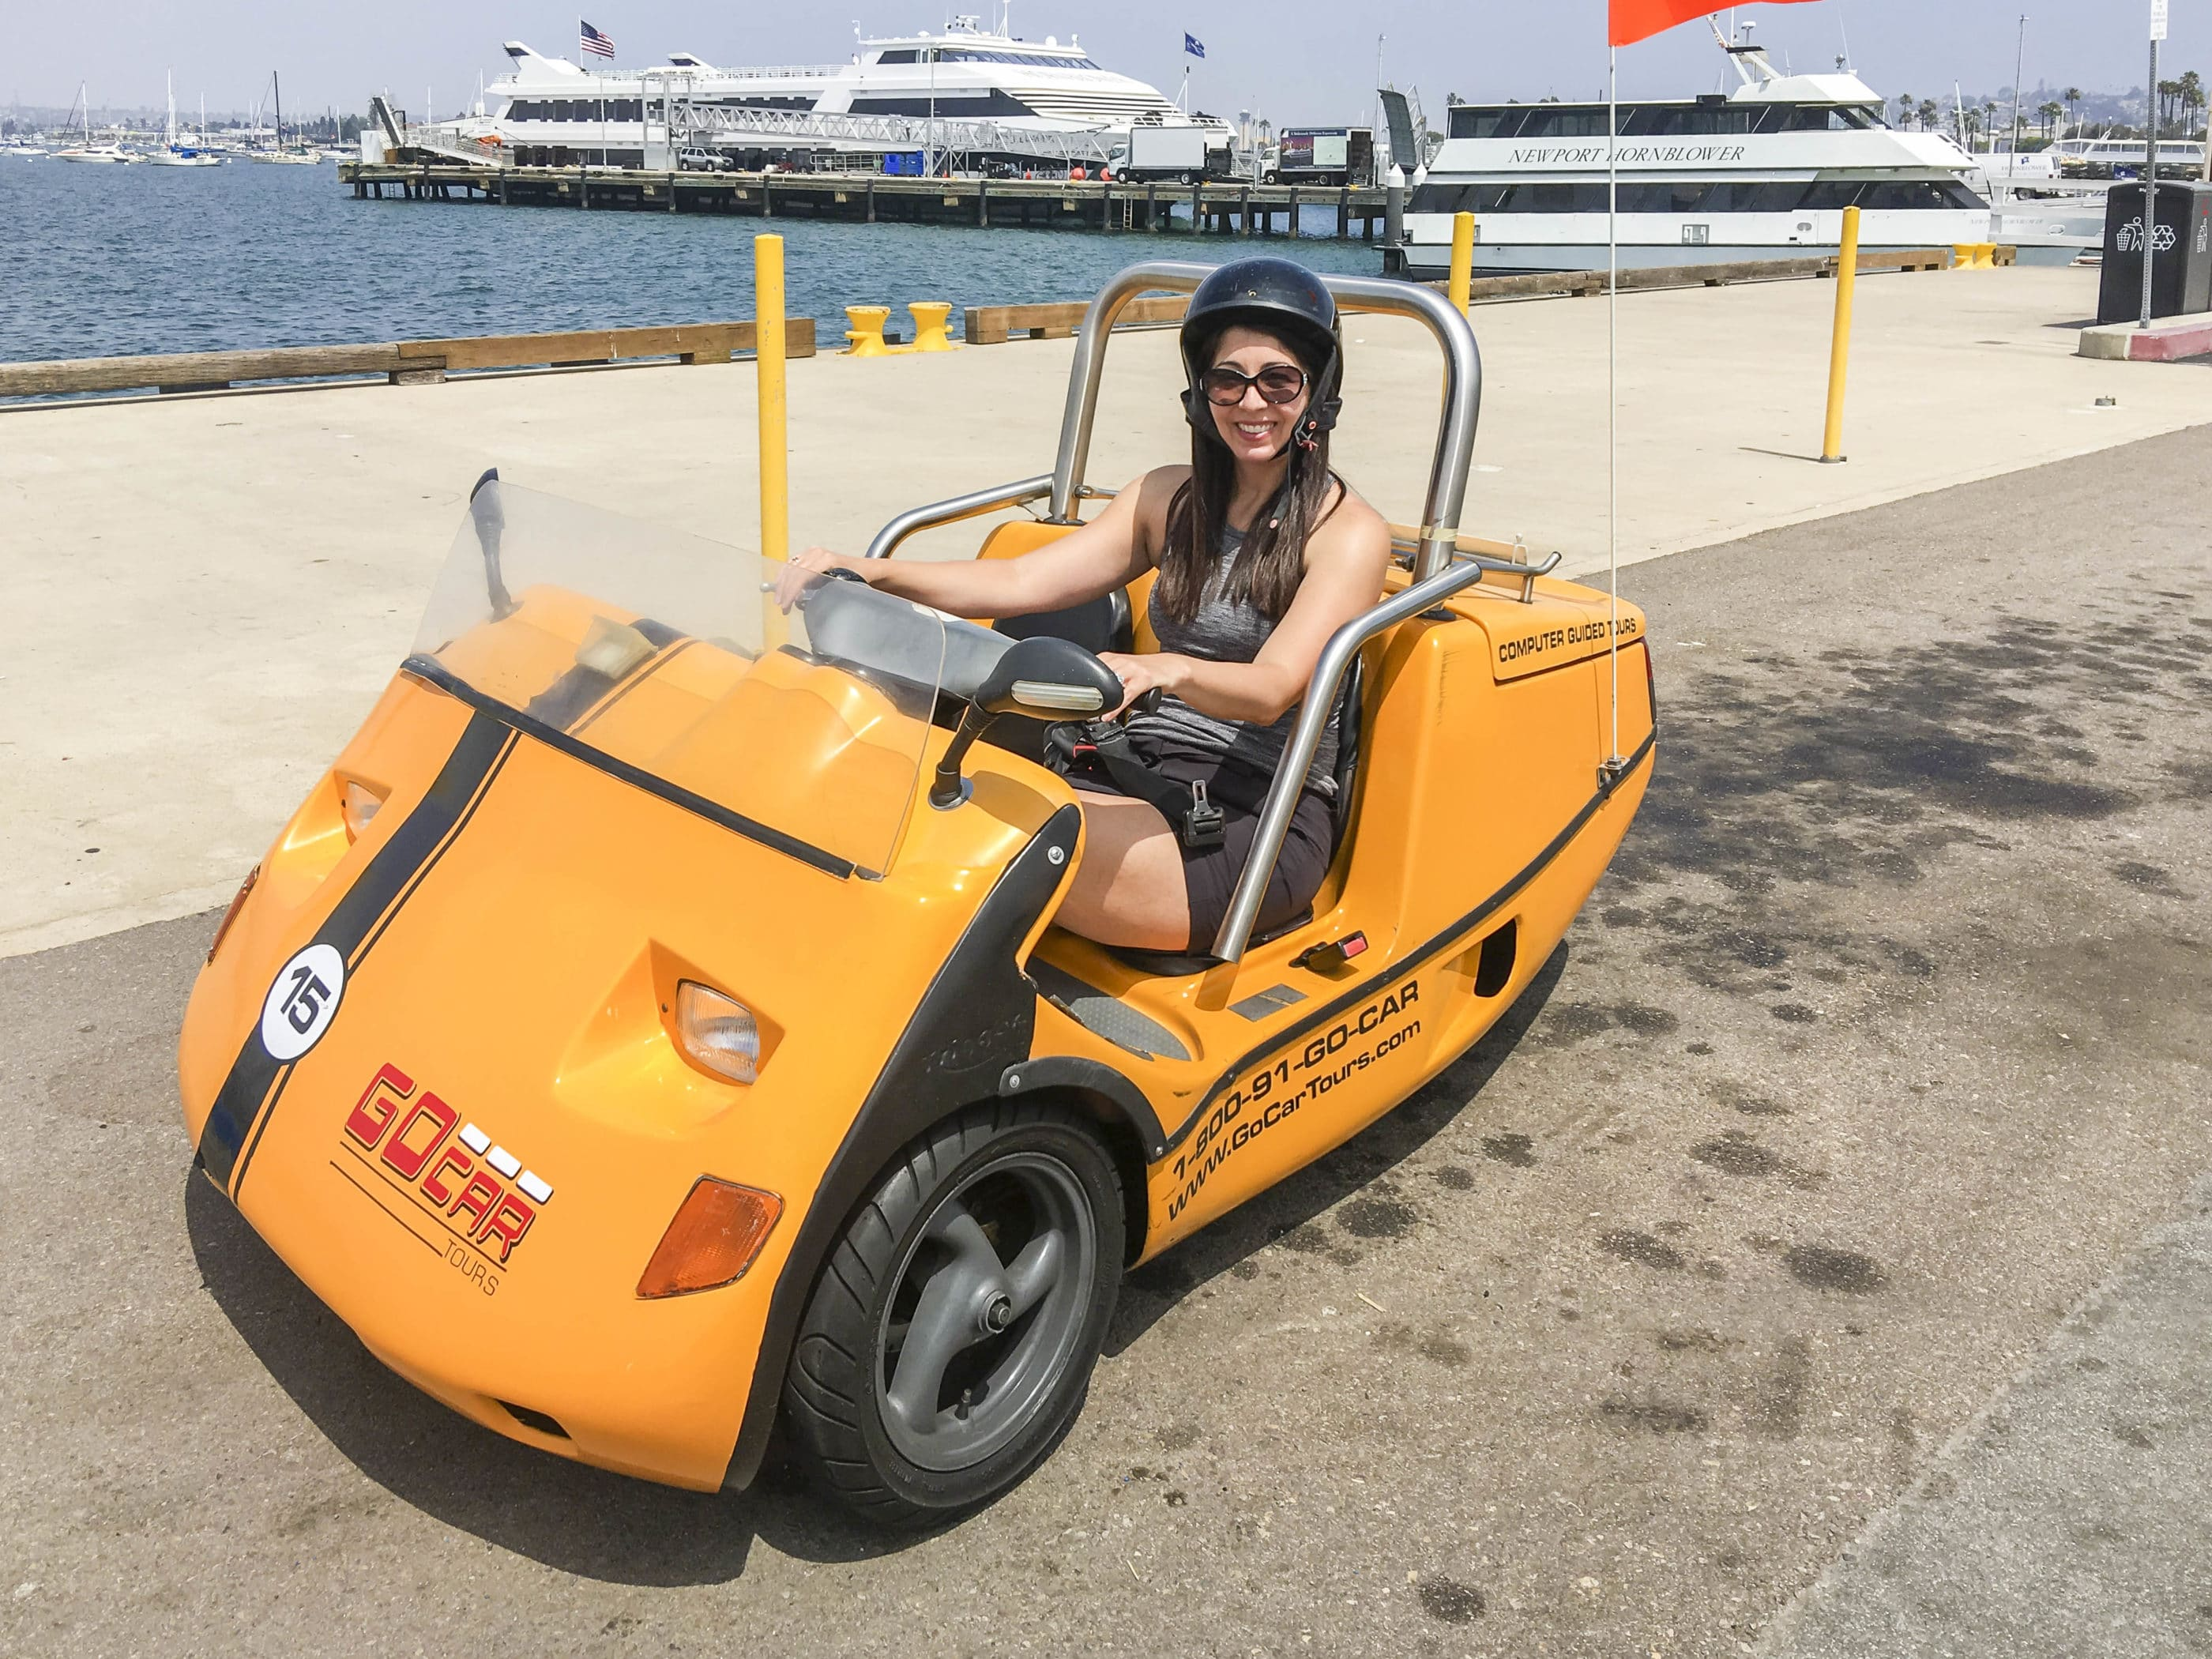 Me in a little yellow GoCar in downtown San Diego.